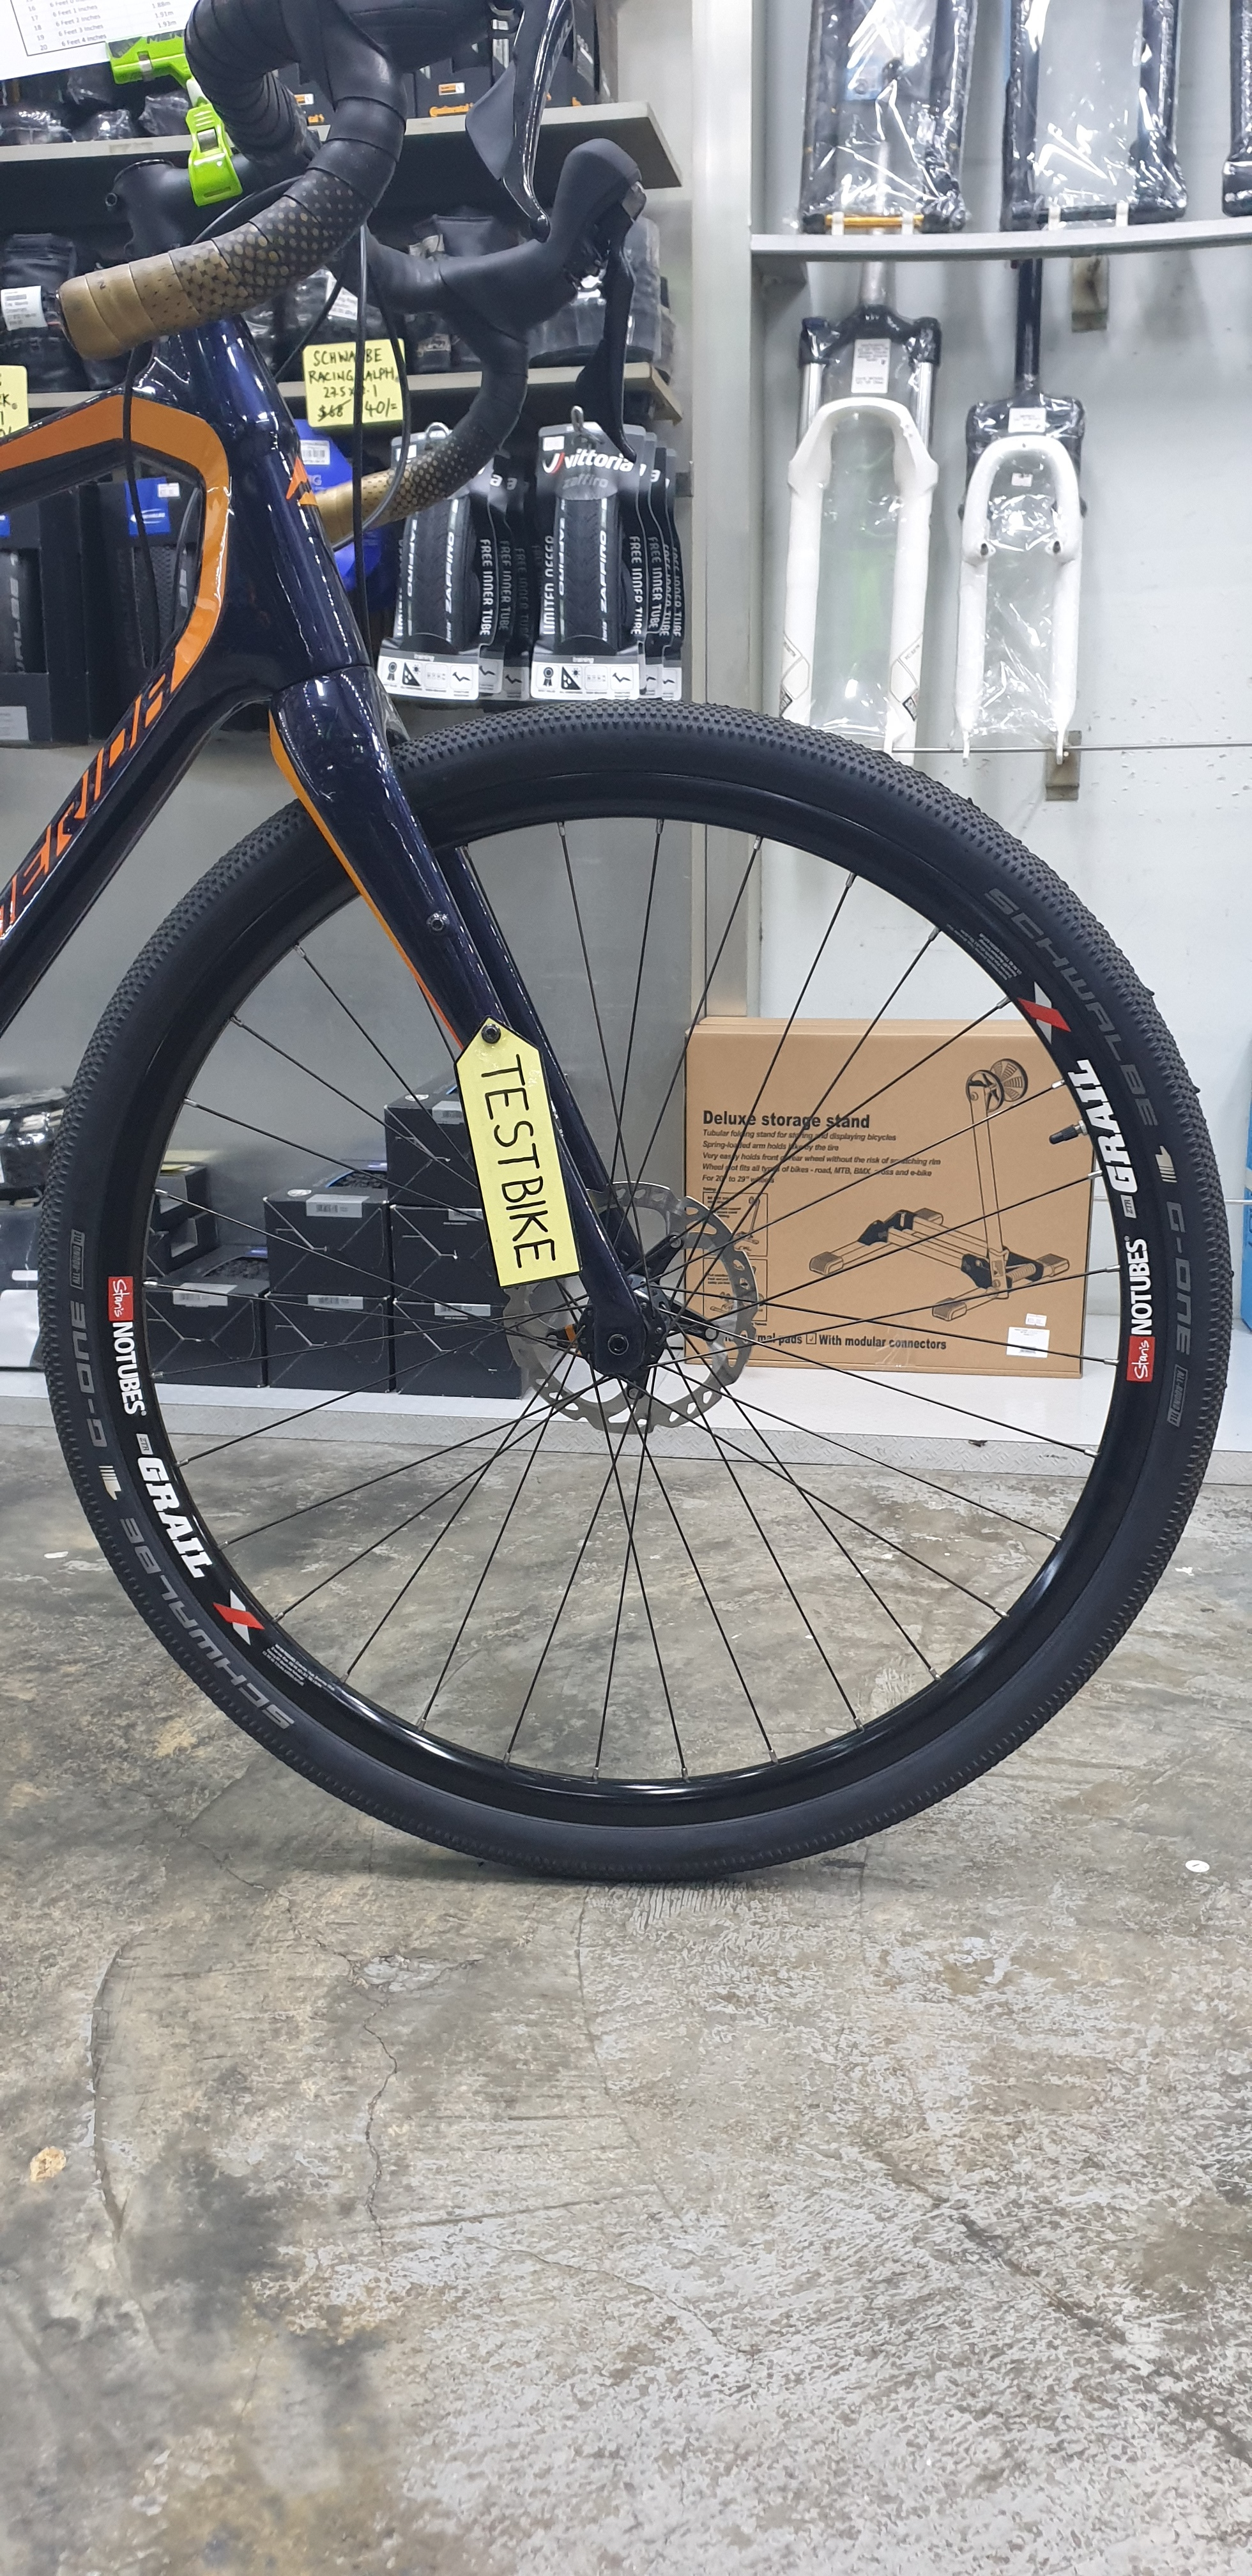 Example:  Image of Wheelset [to verify 32 spokes]